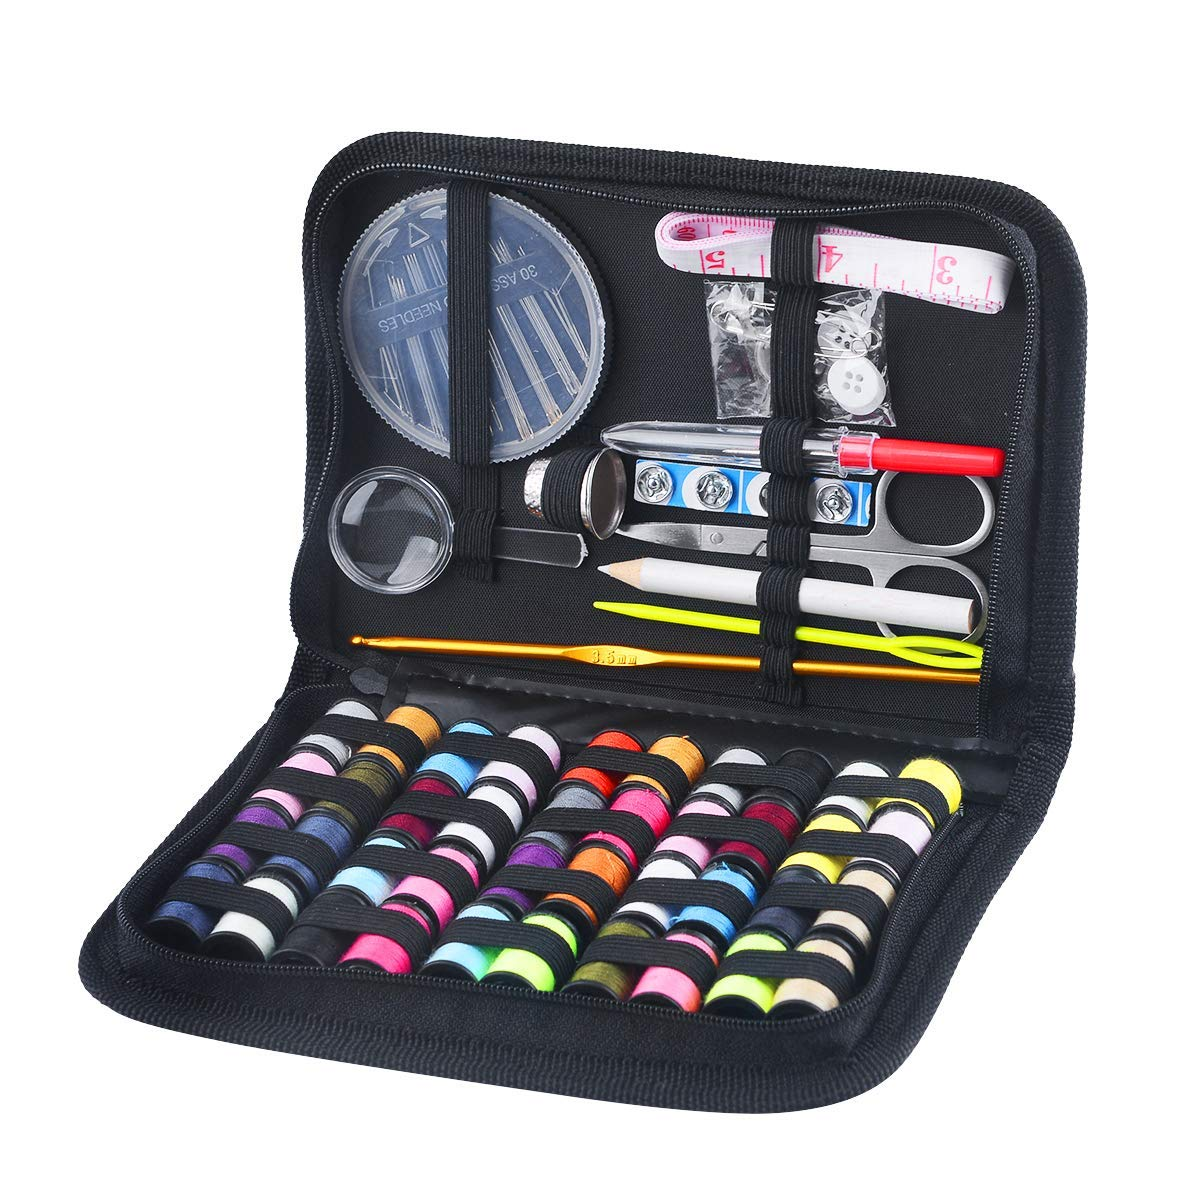 130 Mini Sewing Kit, Southsun DIY Premium Sewing Supplies for Kids, Beginner, Travel, Emergency with Scissors, Thimble, Thread, Needles, Tape Measure, Carrying Case and Accessories by Southsun